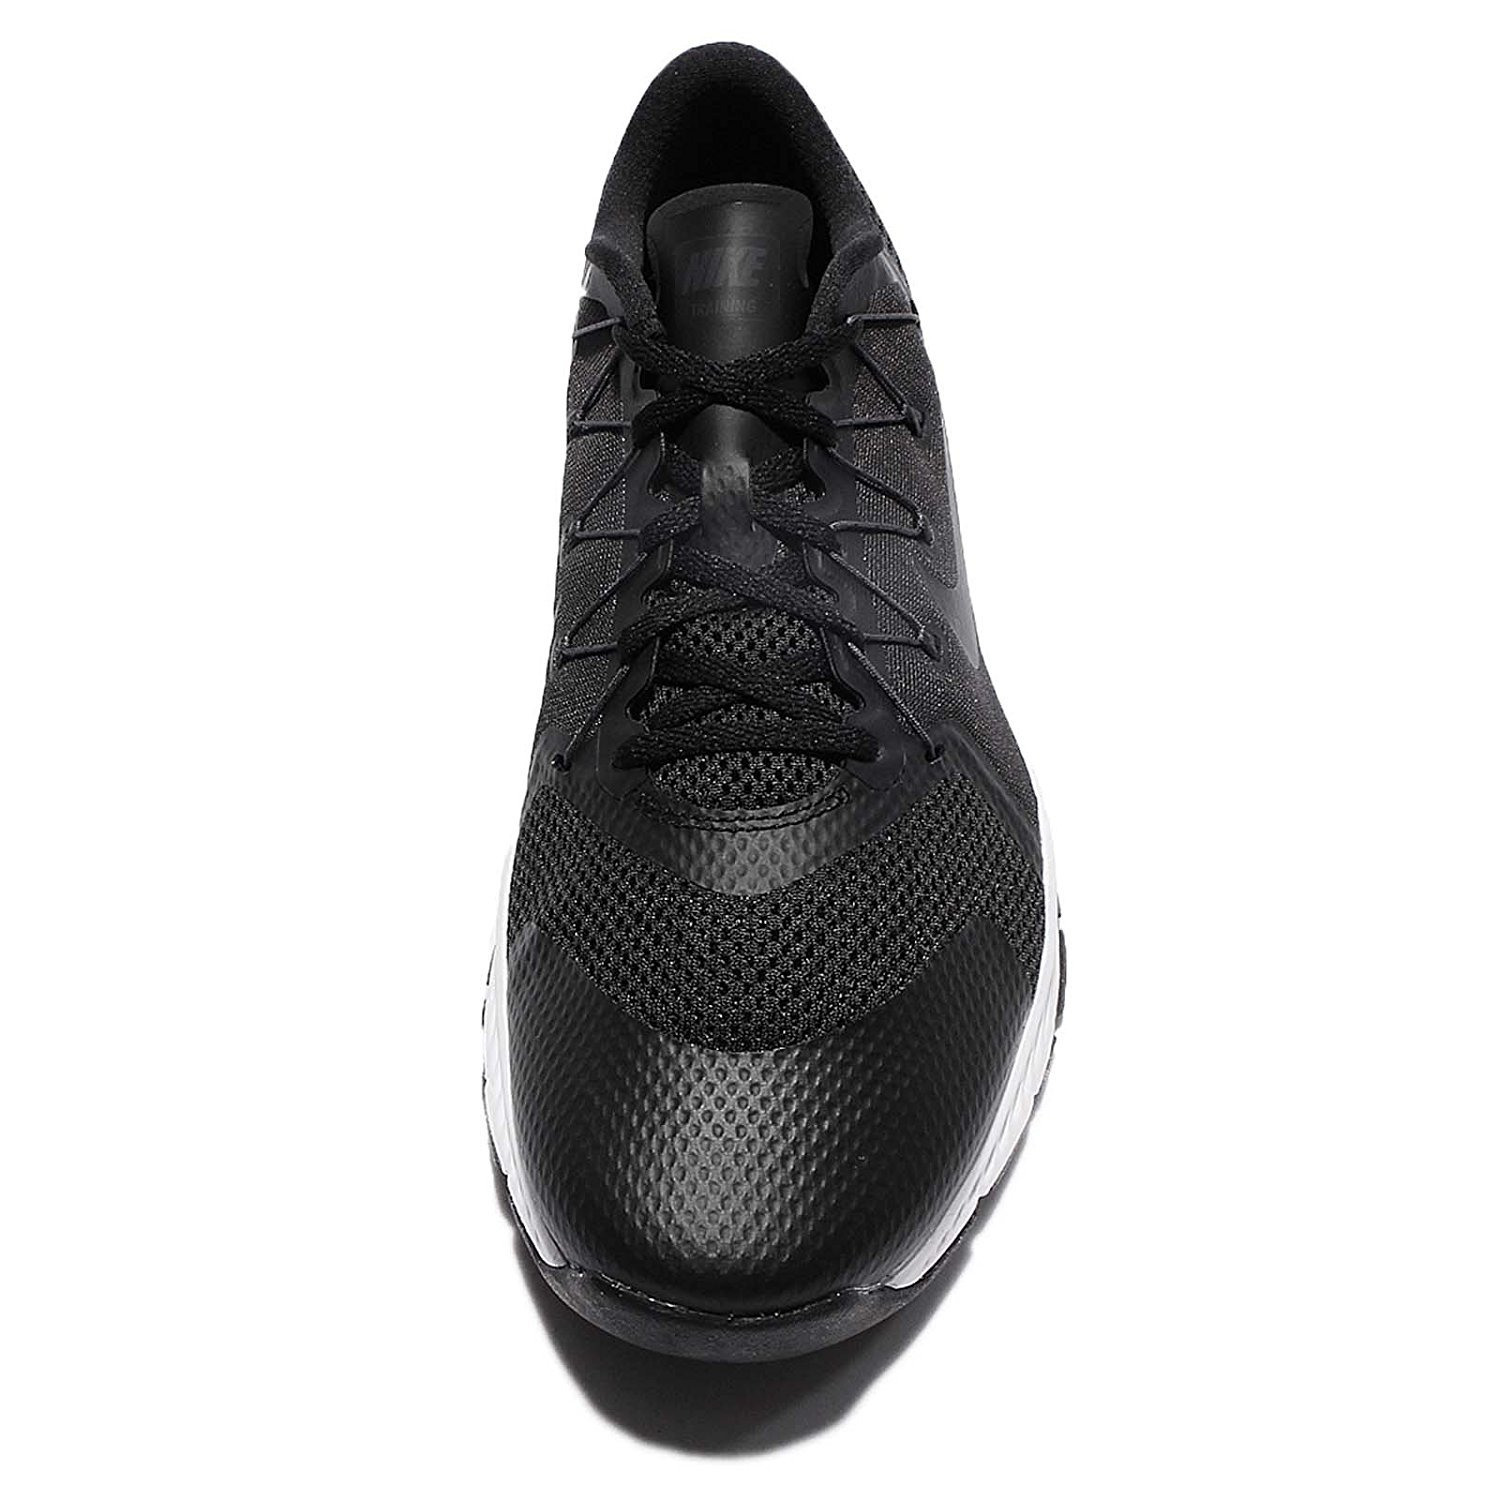 NIKE Air Zoom Train Complete Mens Running Trainers 882119 Sneakers Shoes B01HOXAK2S 9 M US|Black